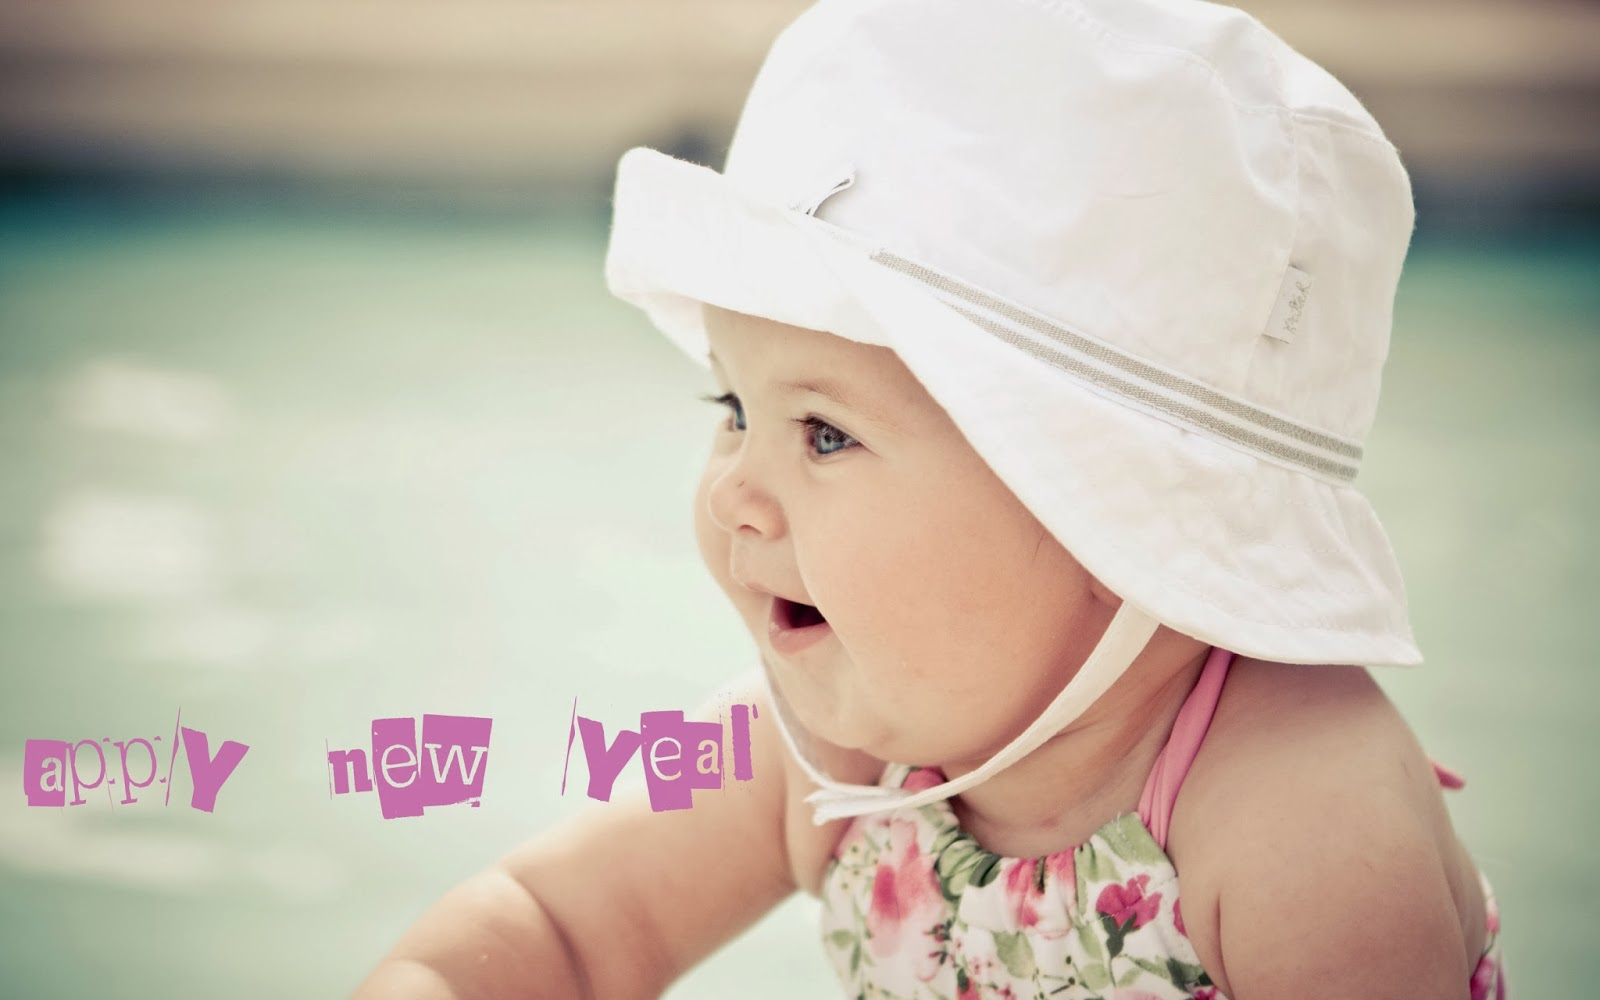 Happy New Year 2014 Cute Baby HD Wallpaper. 1600 x 1000.Happy New Years Baby Pictures